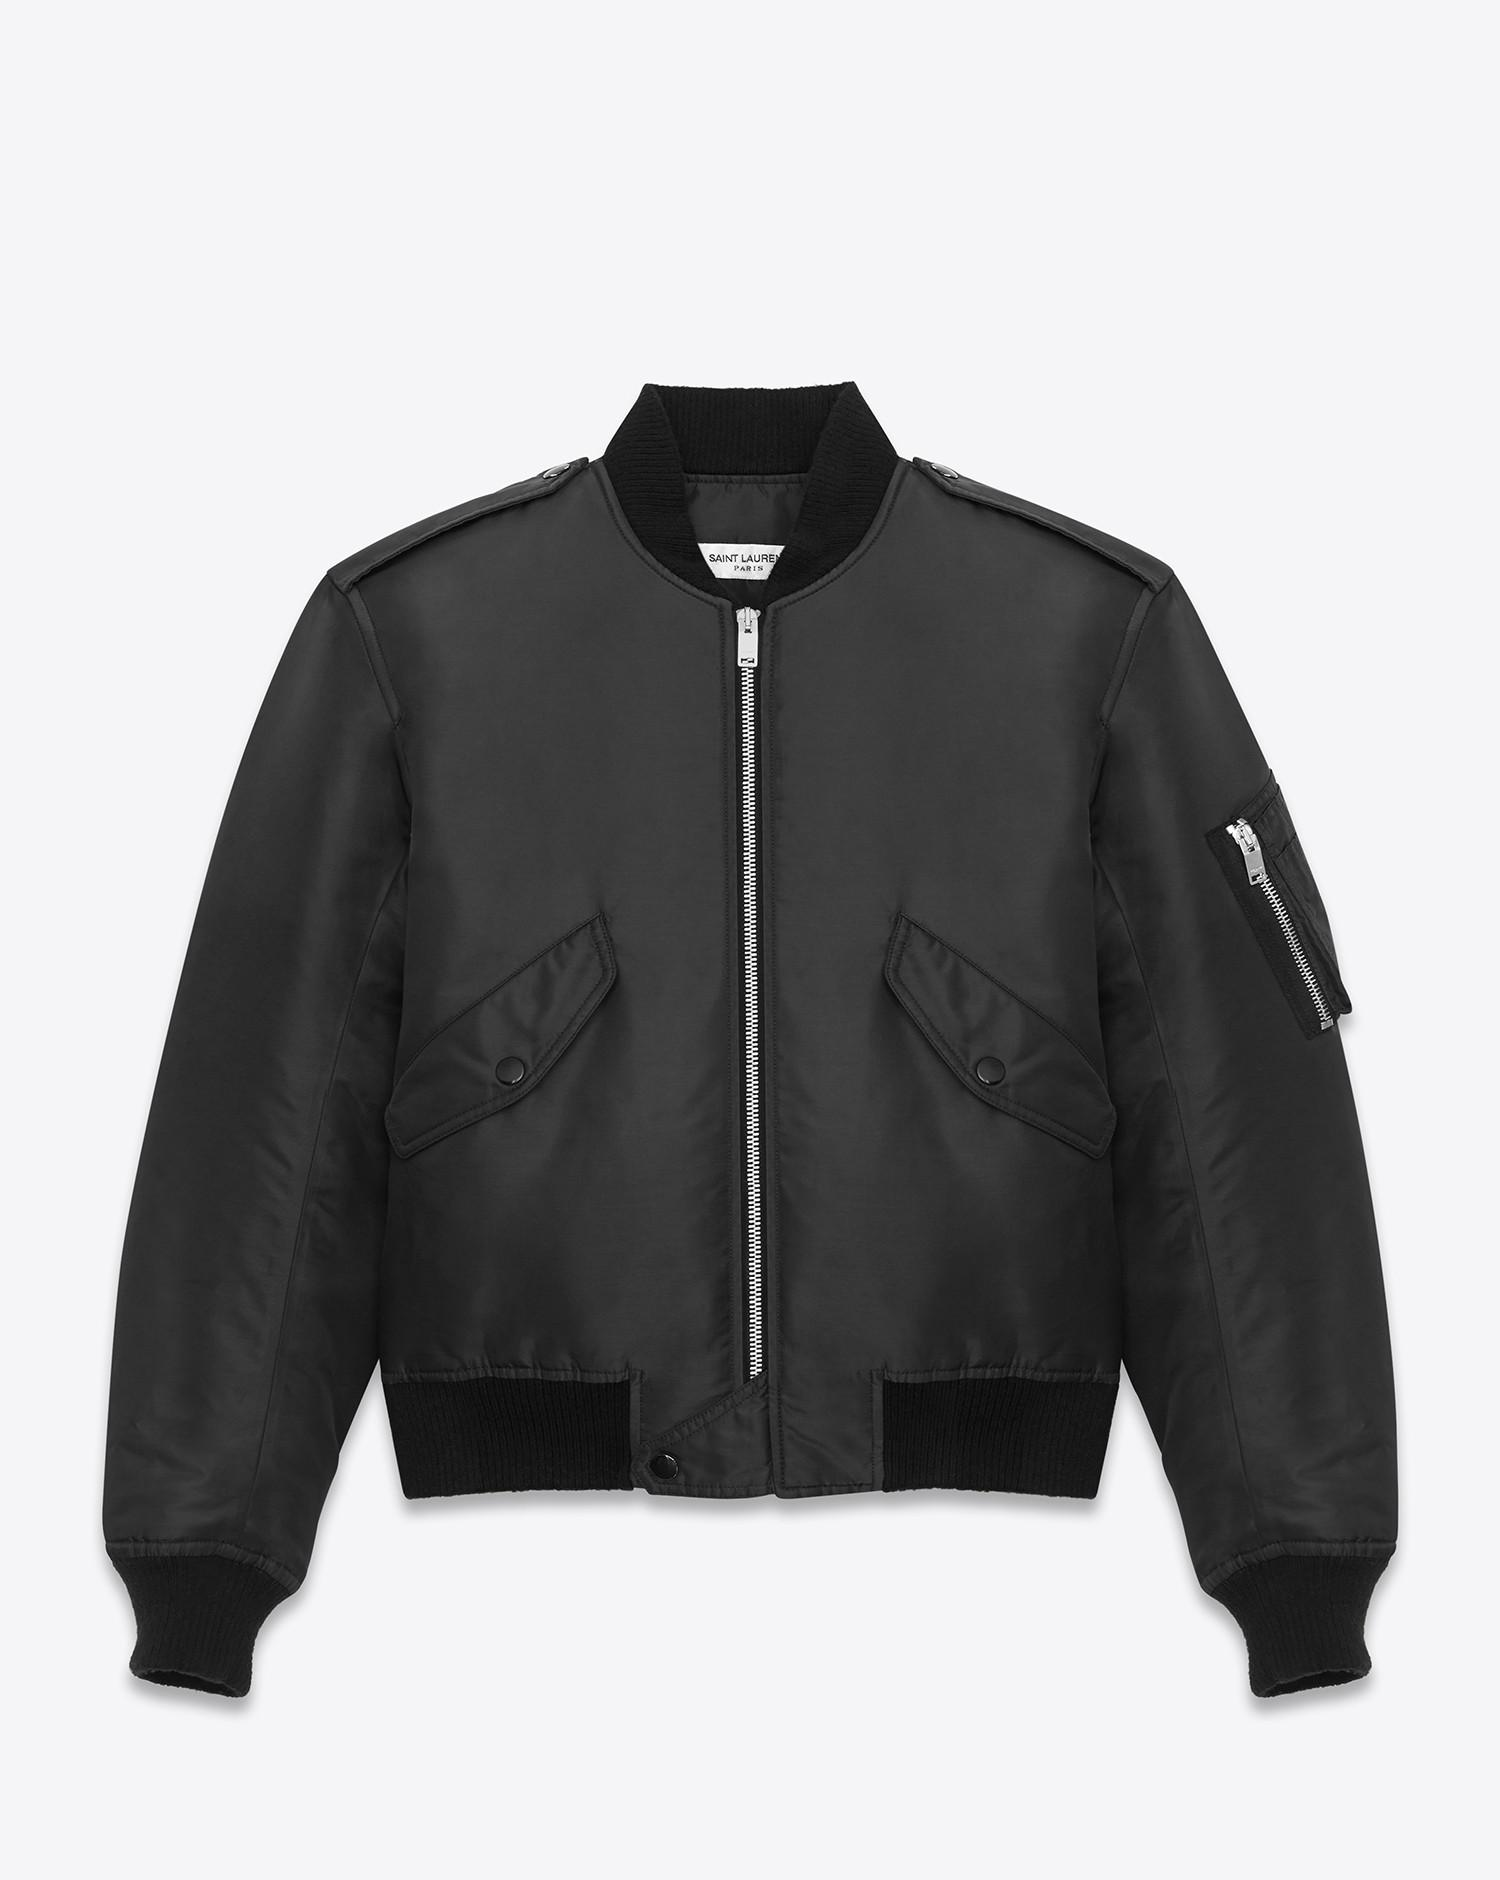 Lyst - Saint laurent Classic Bomber Jacket In Black Nylon in Black ...